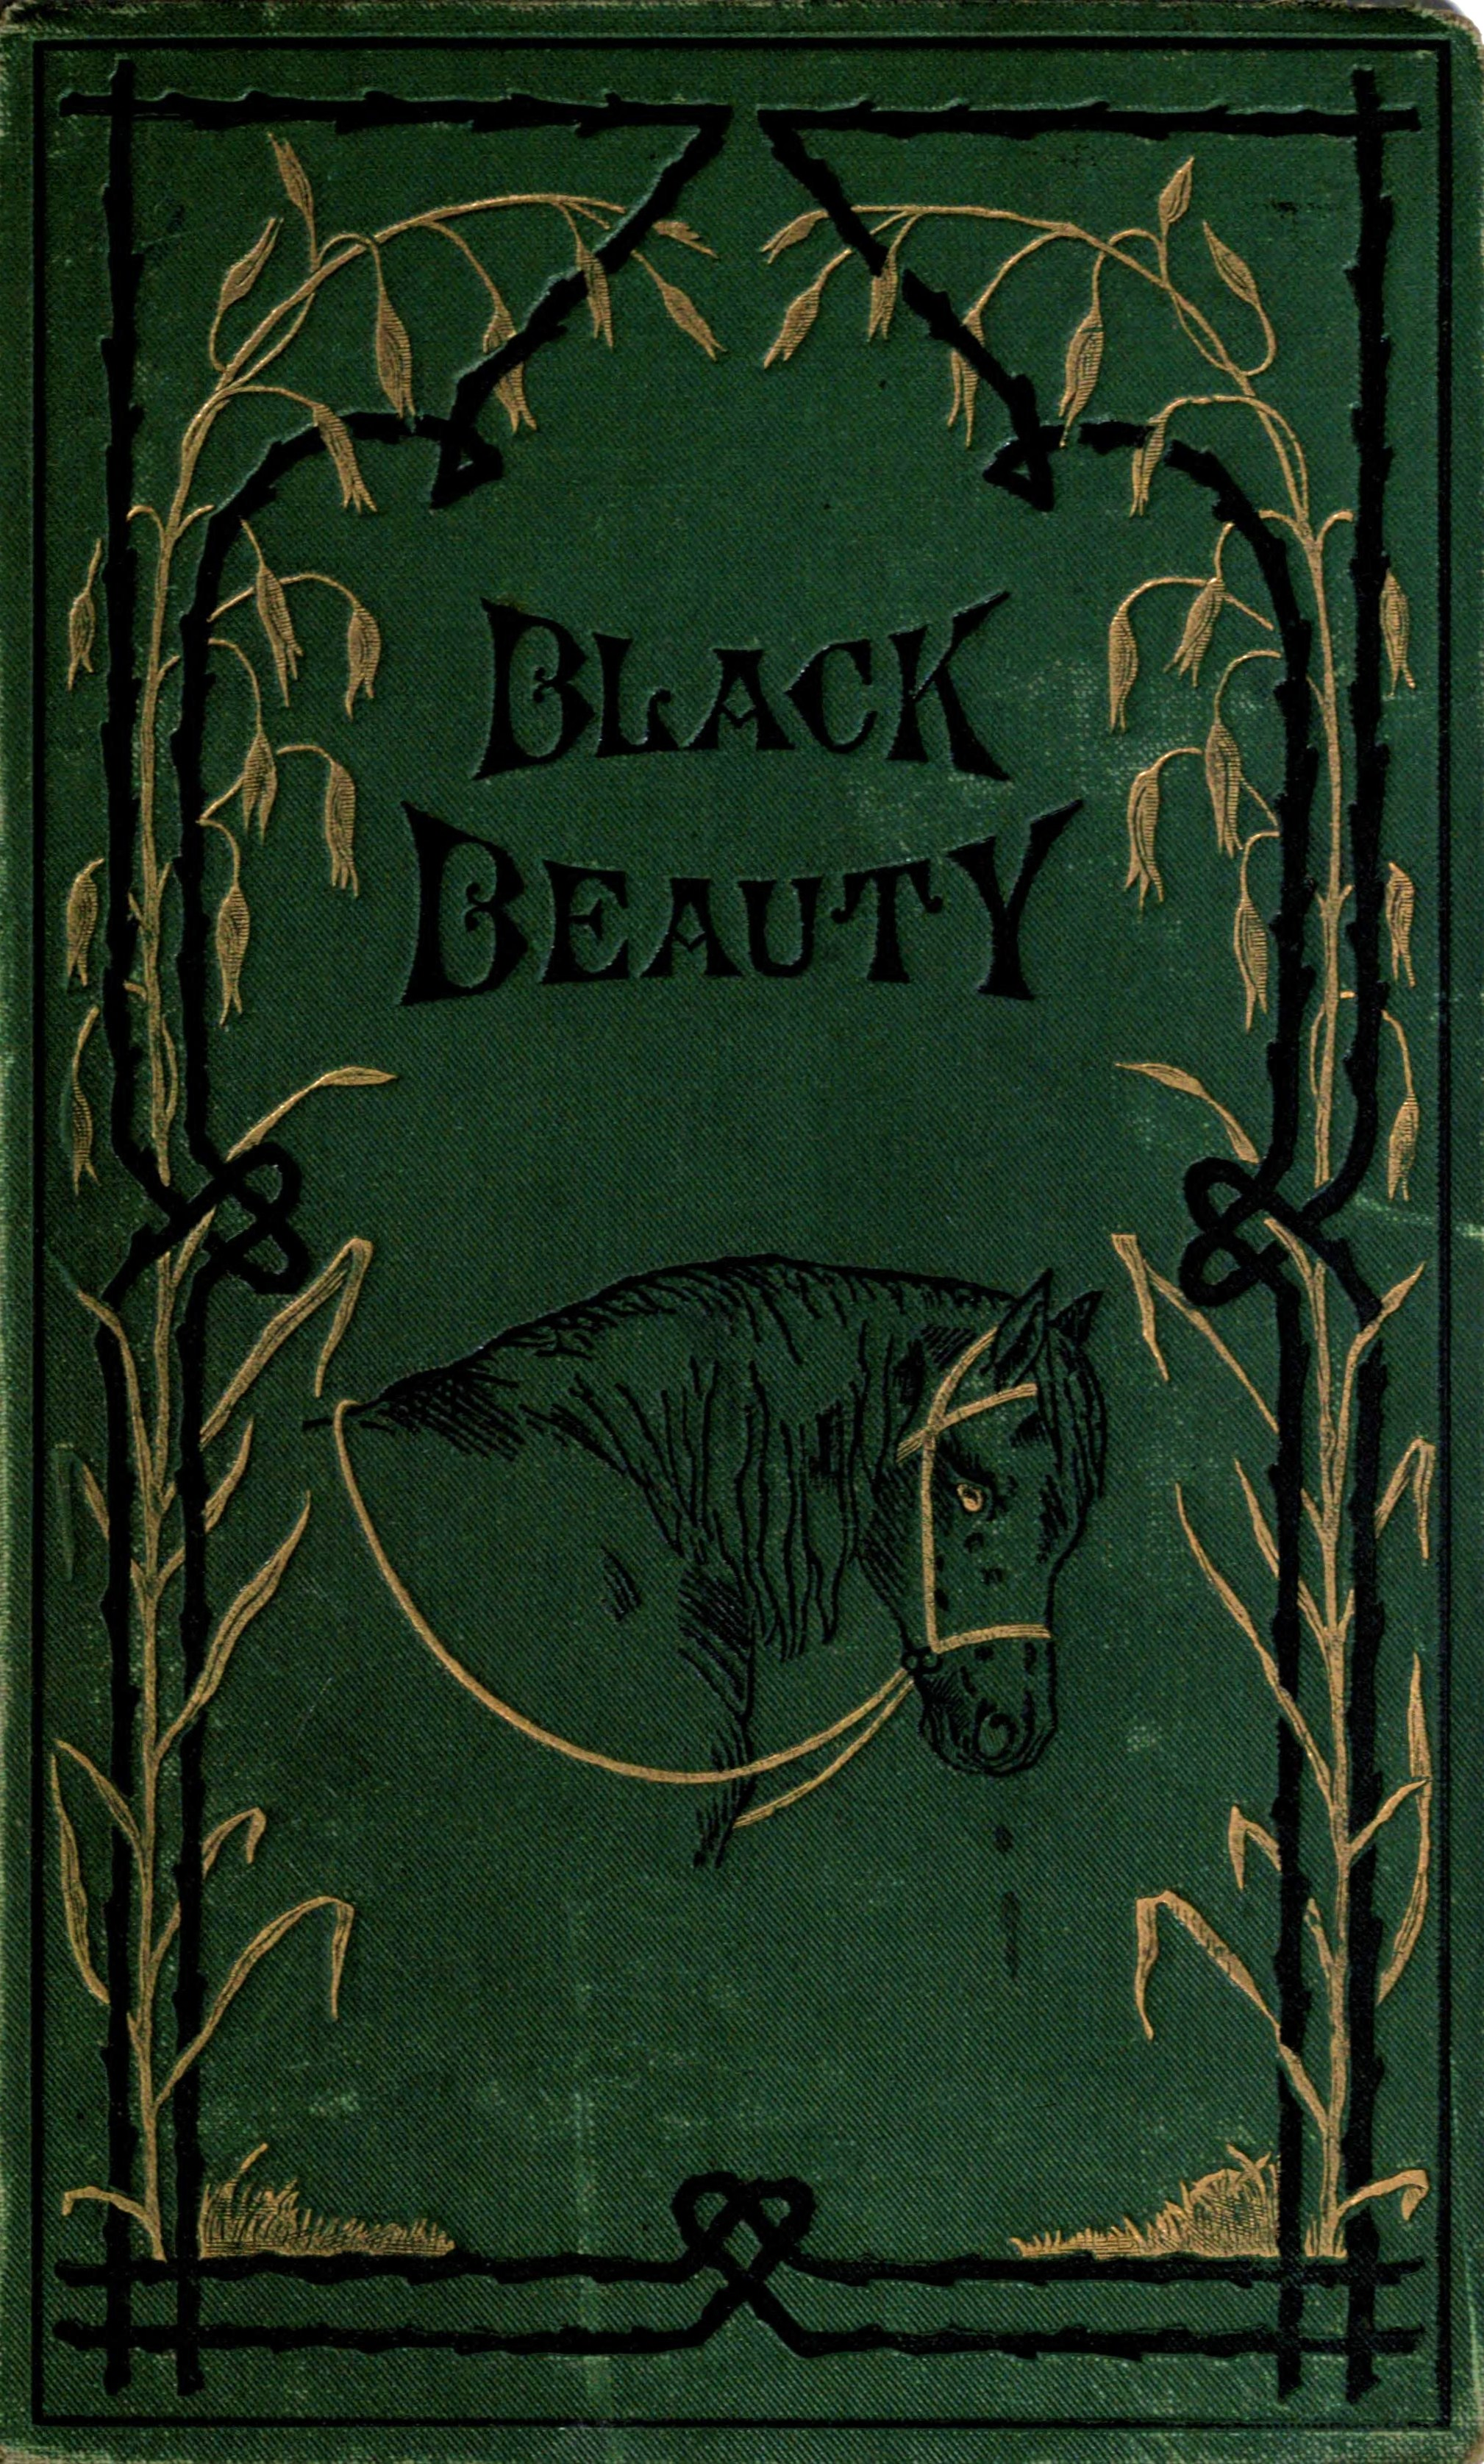 Black beauty | literawiki | fandom powered by wikia.